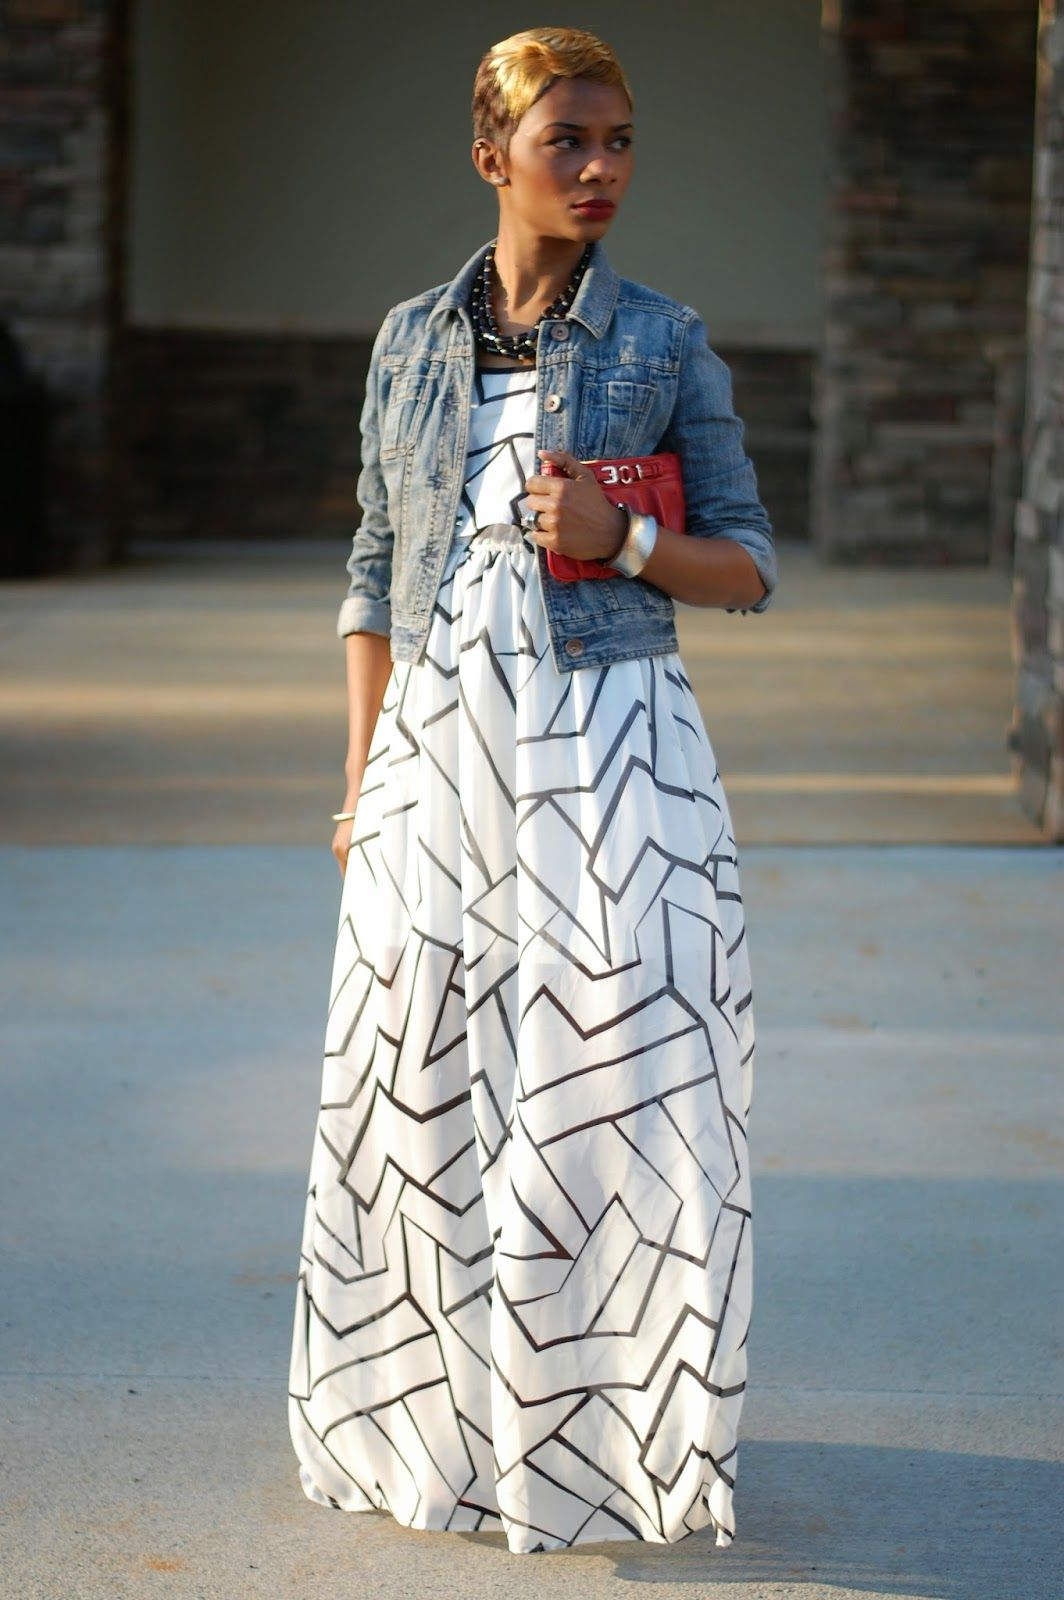 Love this look maxi dress denim jacket youngatstyle dressy